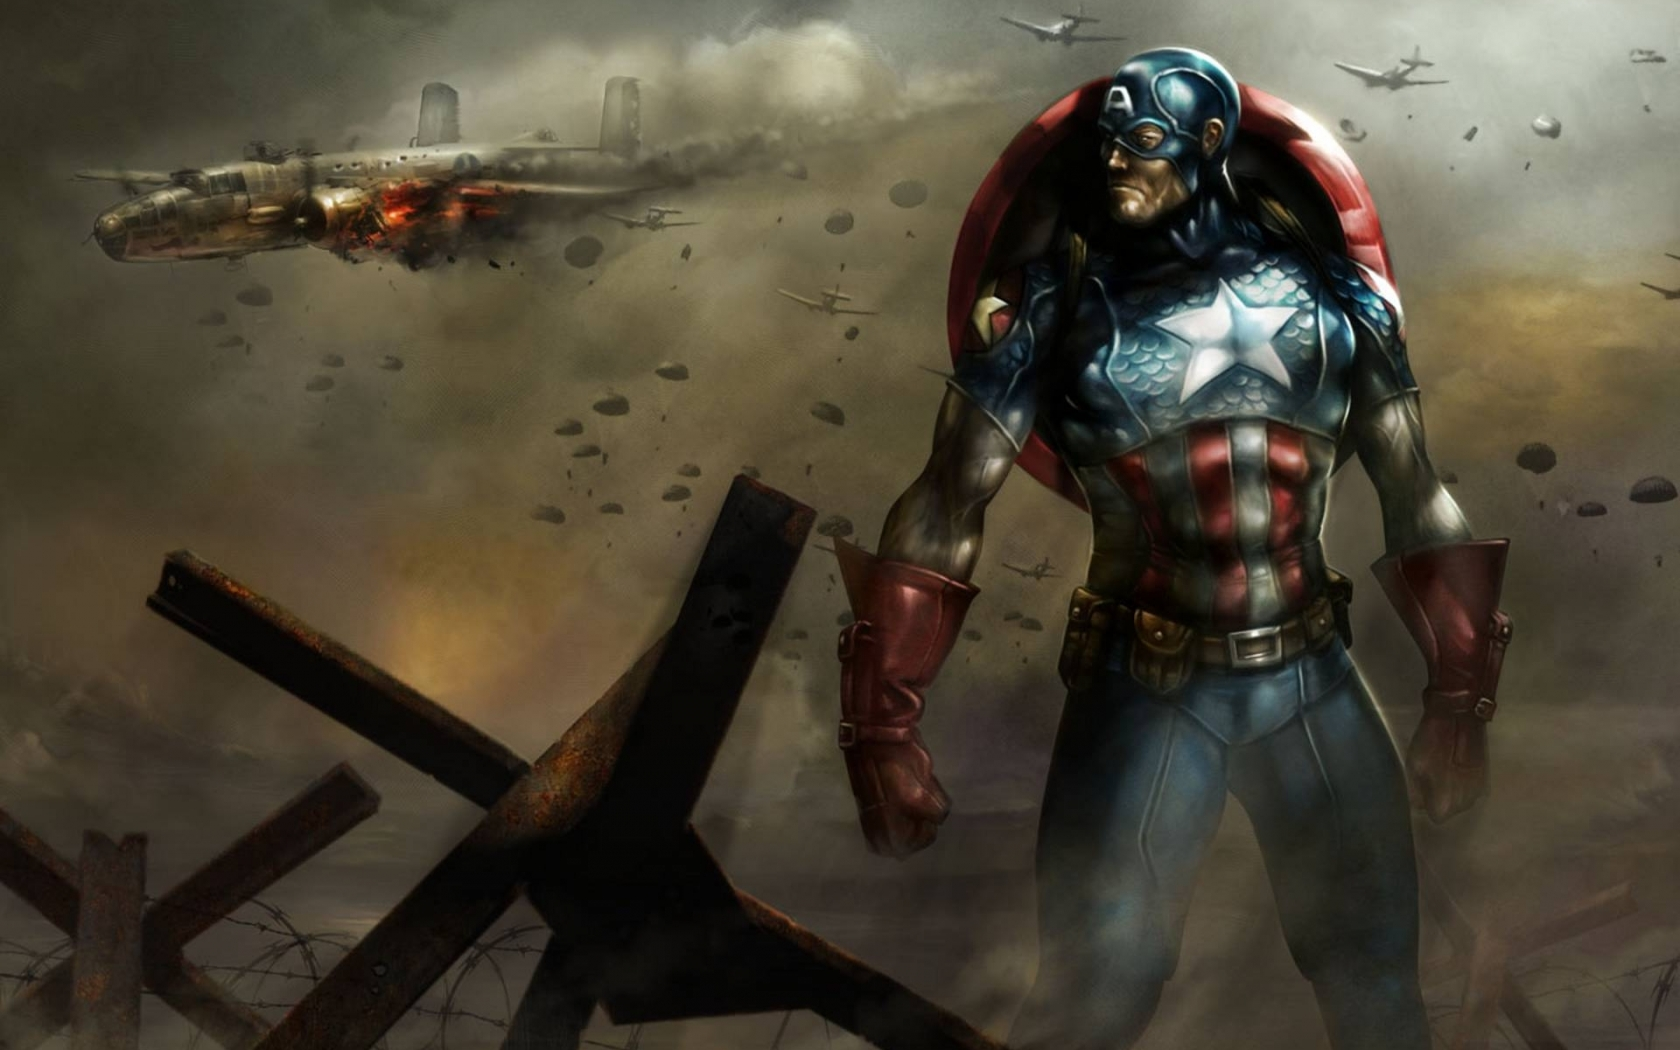 Captain America Wallpapers Awesome Wallpapers 1680x1050